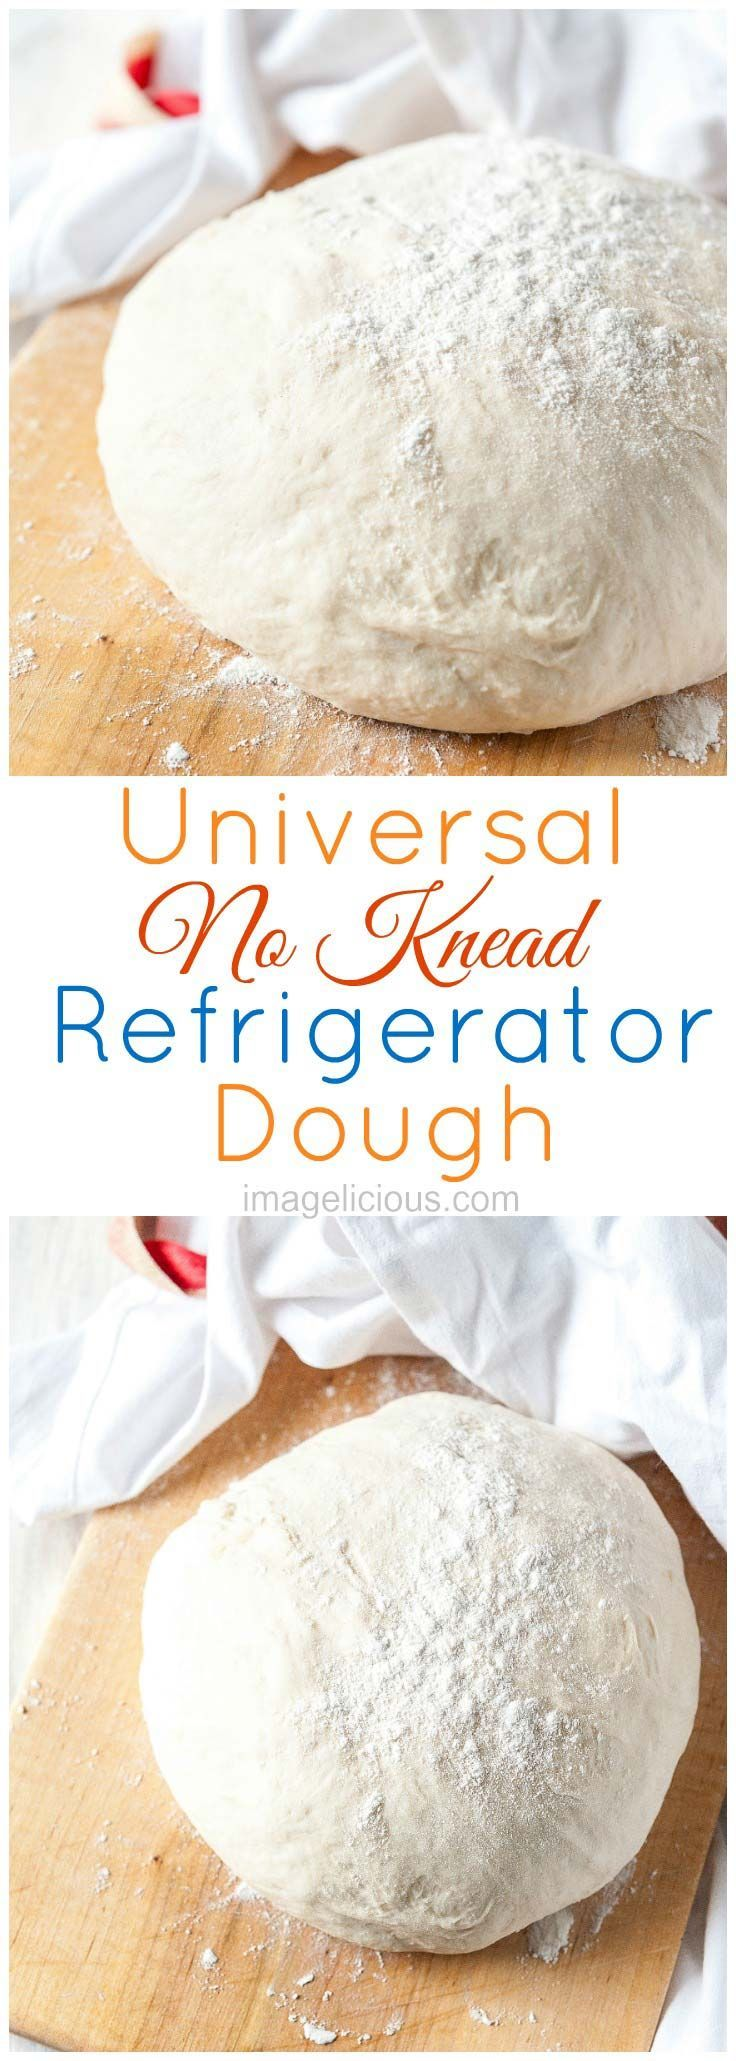 Universal No Knead Refrigerator Dough is very easy to make. You only need 5 minutes to mix all the ingredients with a spoon and then leave the dough in the fridge or overnight. It can be used for rolls, pizza, crescents, or even bagels. It's also Vegan | Imagelicious